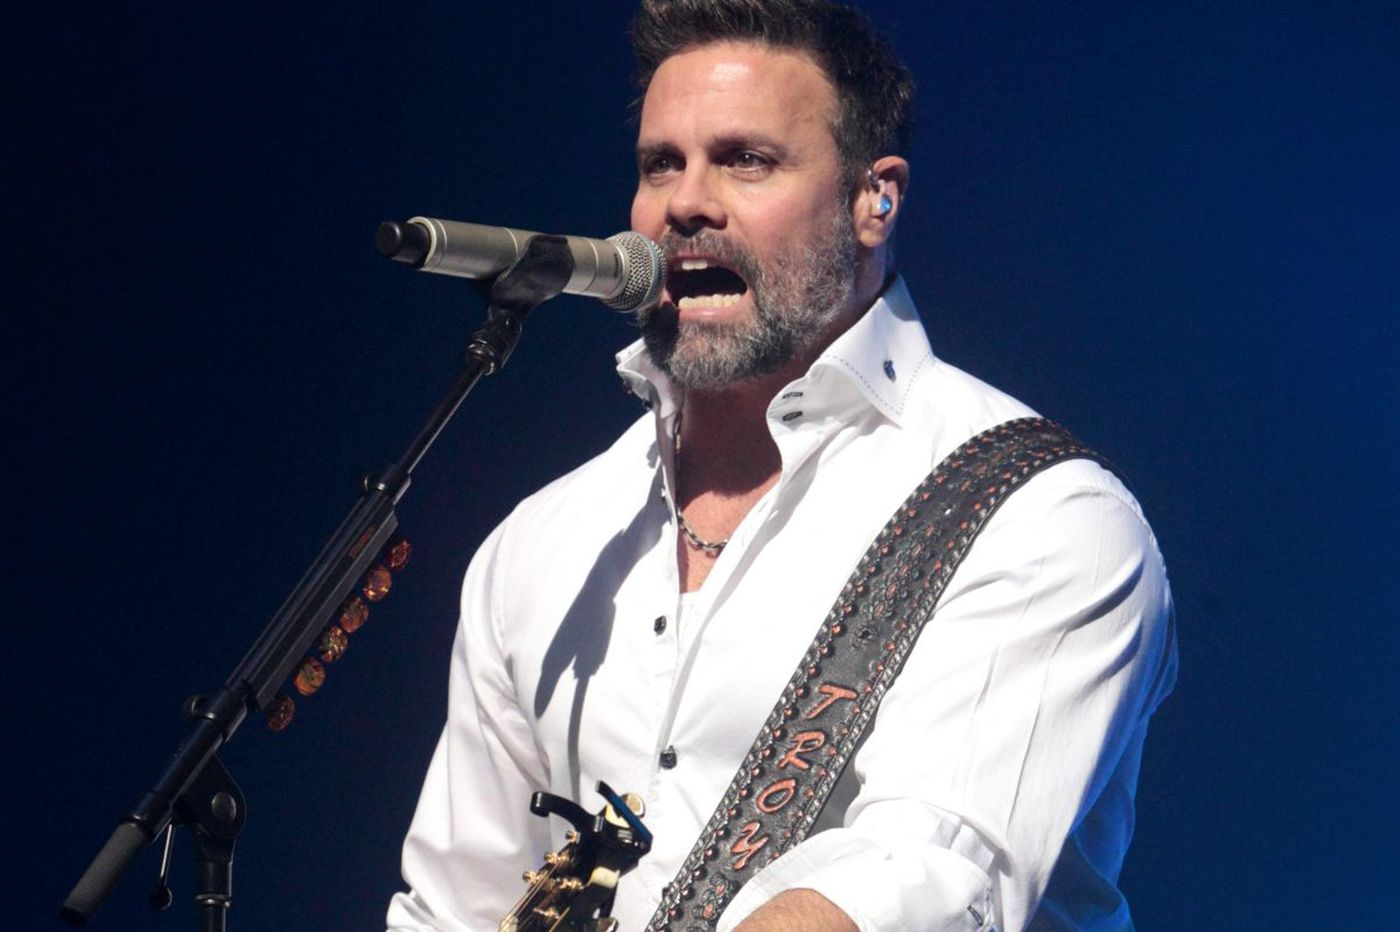 Country music star Troy Gentry dies in copter crash near South Jersey airport